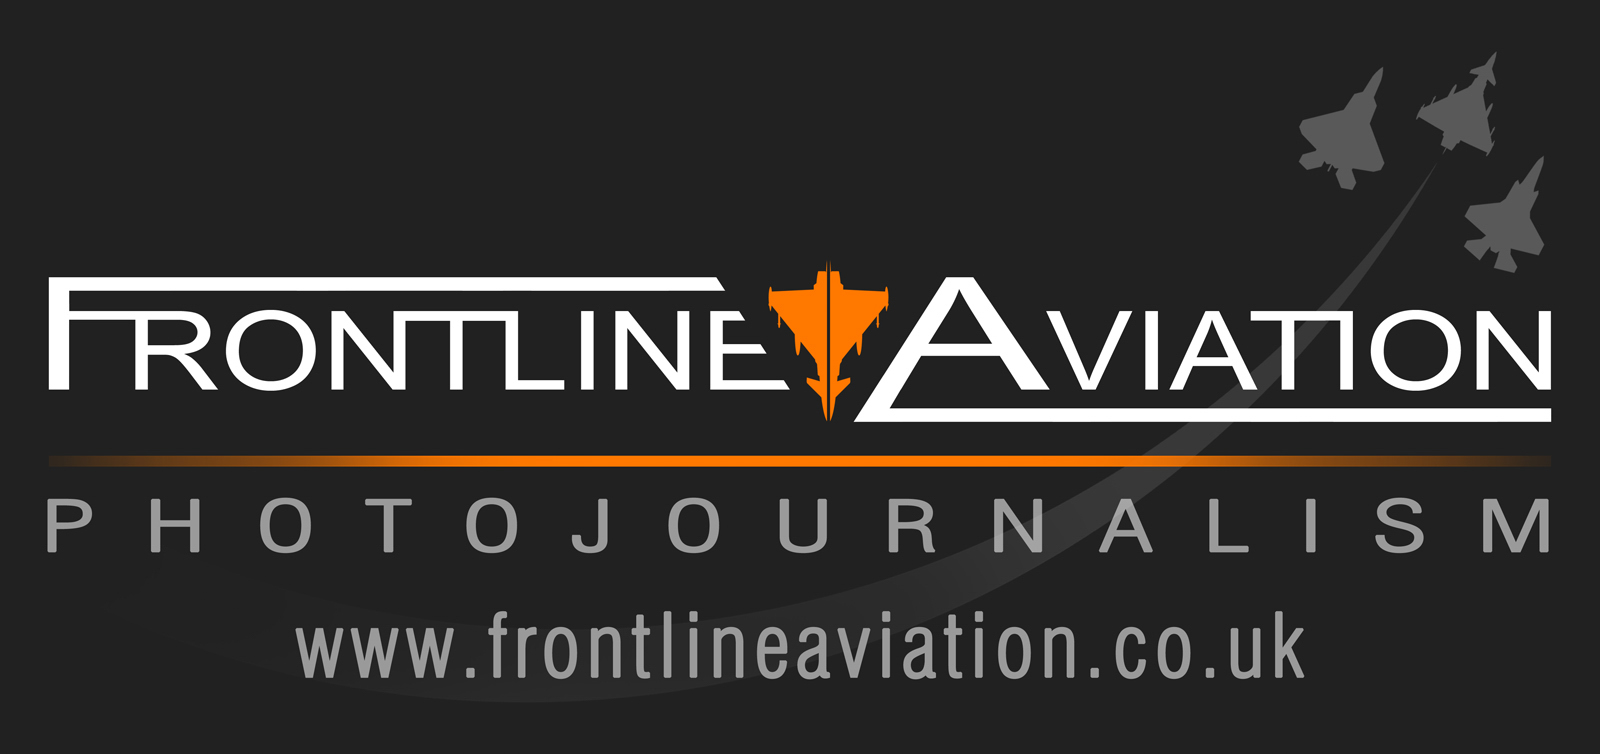 www.frontlineaviation.co.uk